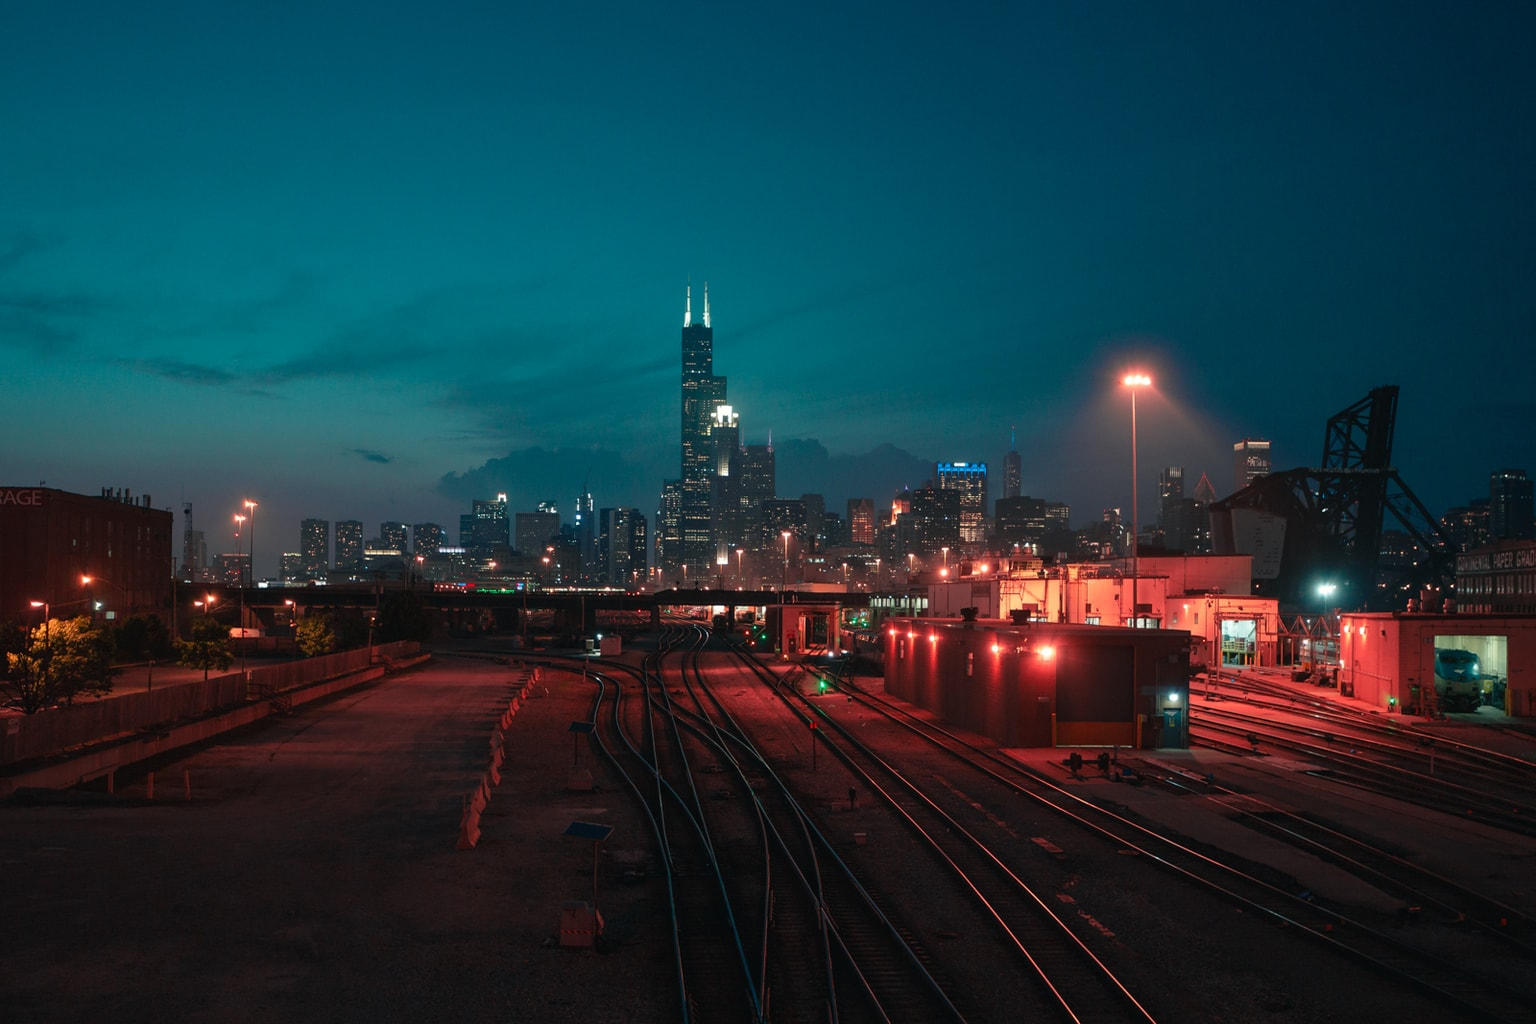 Downtown Chicago at night with railroad tracks in the foreground